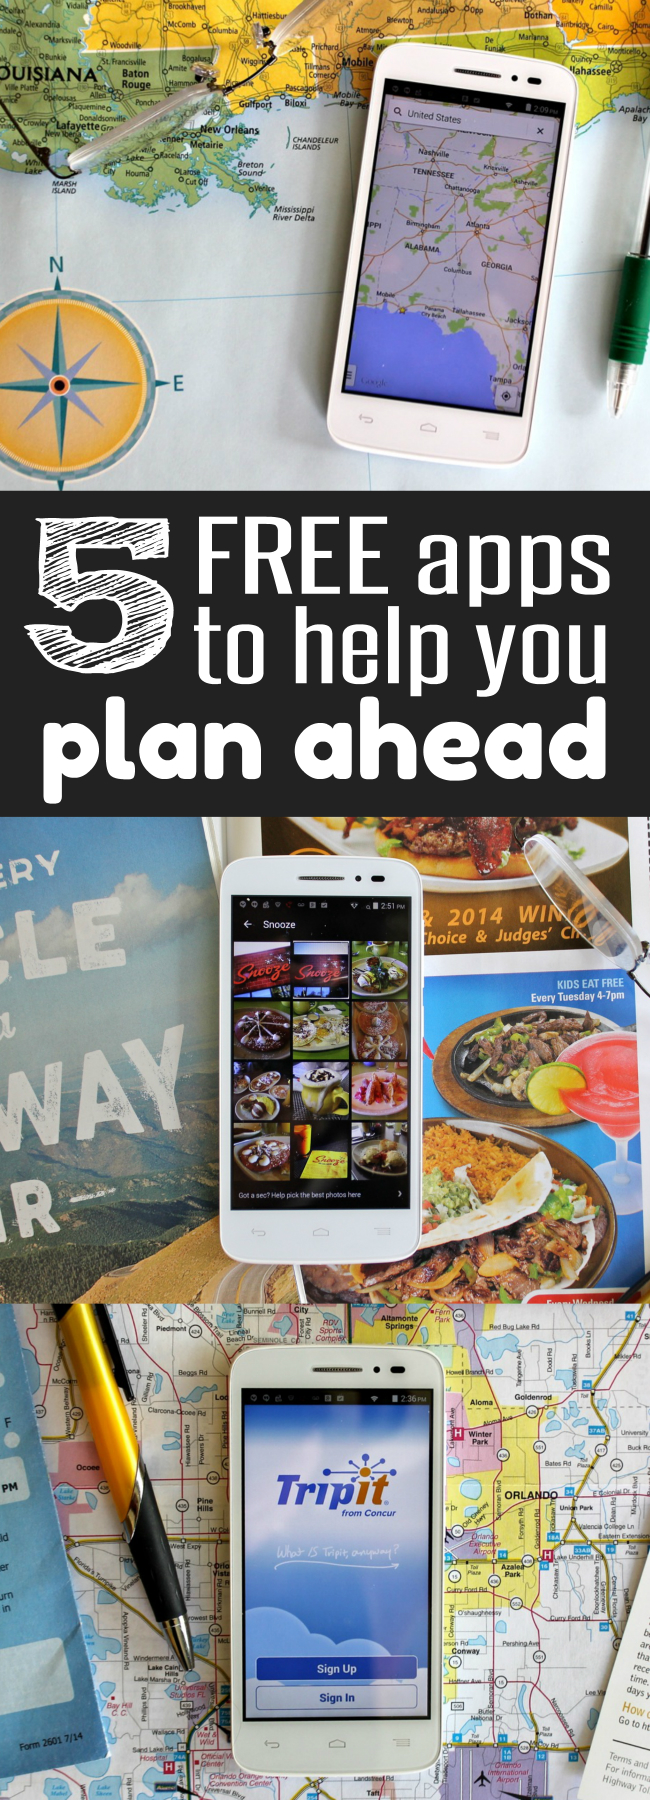 Need a FREE calendar, planning tools, weather alert system and PDA These 5 Free apps to help you plan ahead help you get organized Tips from HappyandBlessed.com